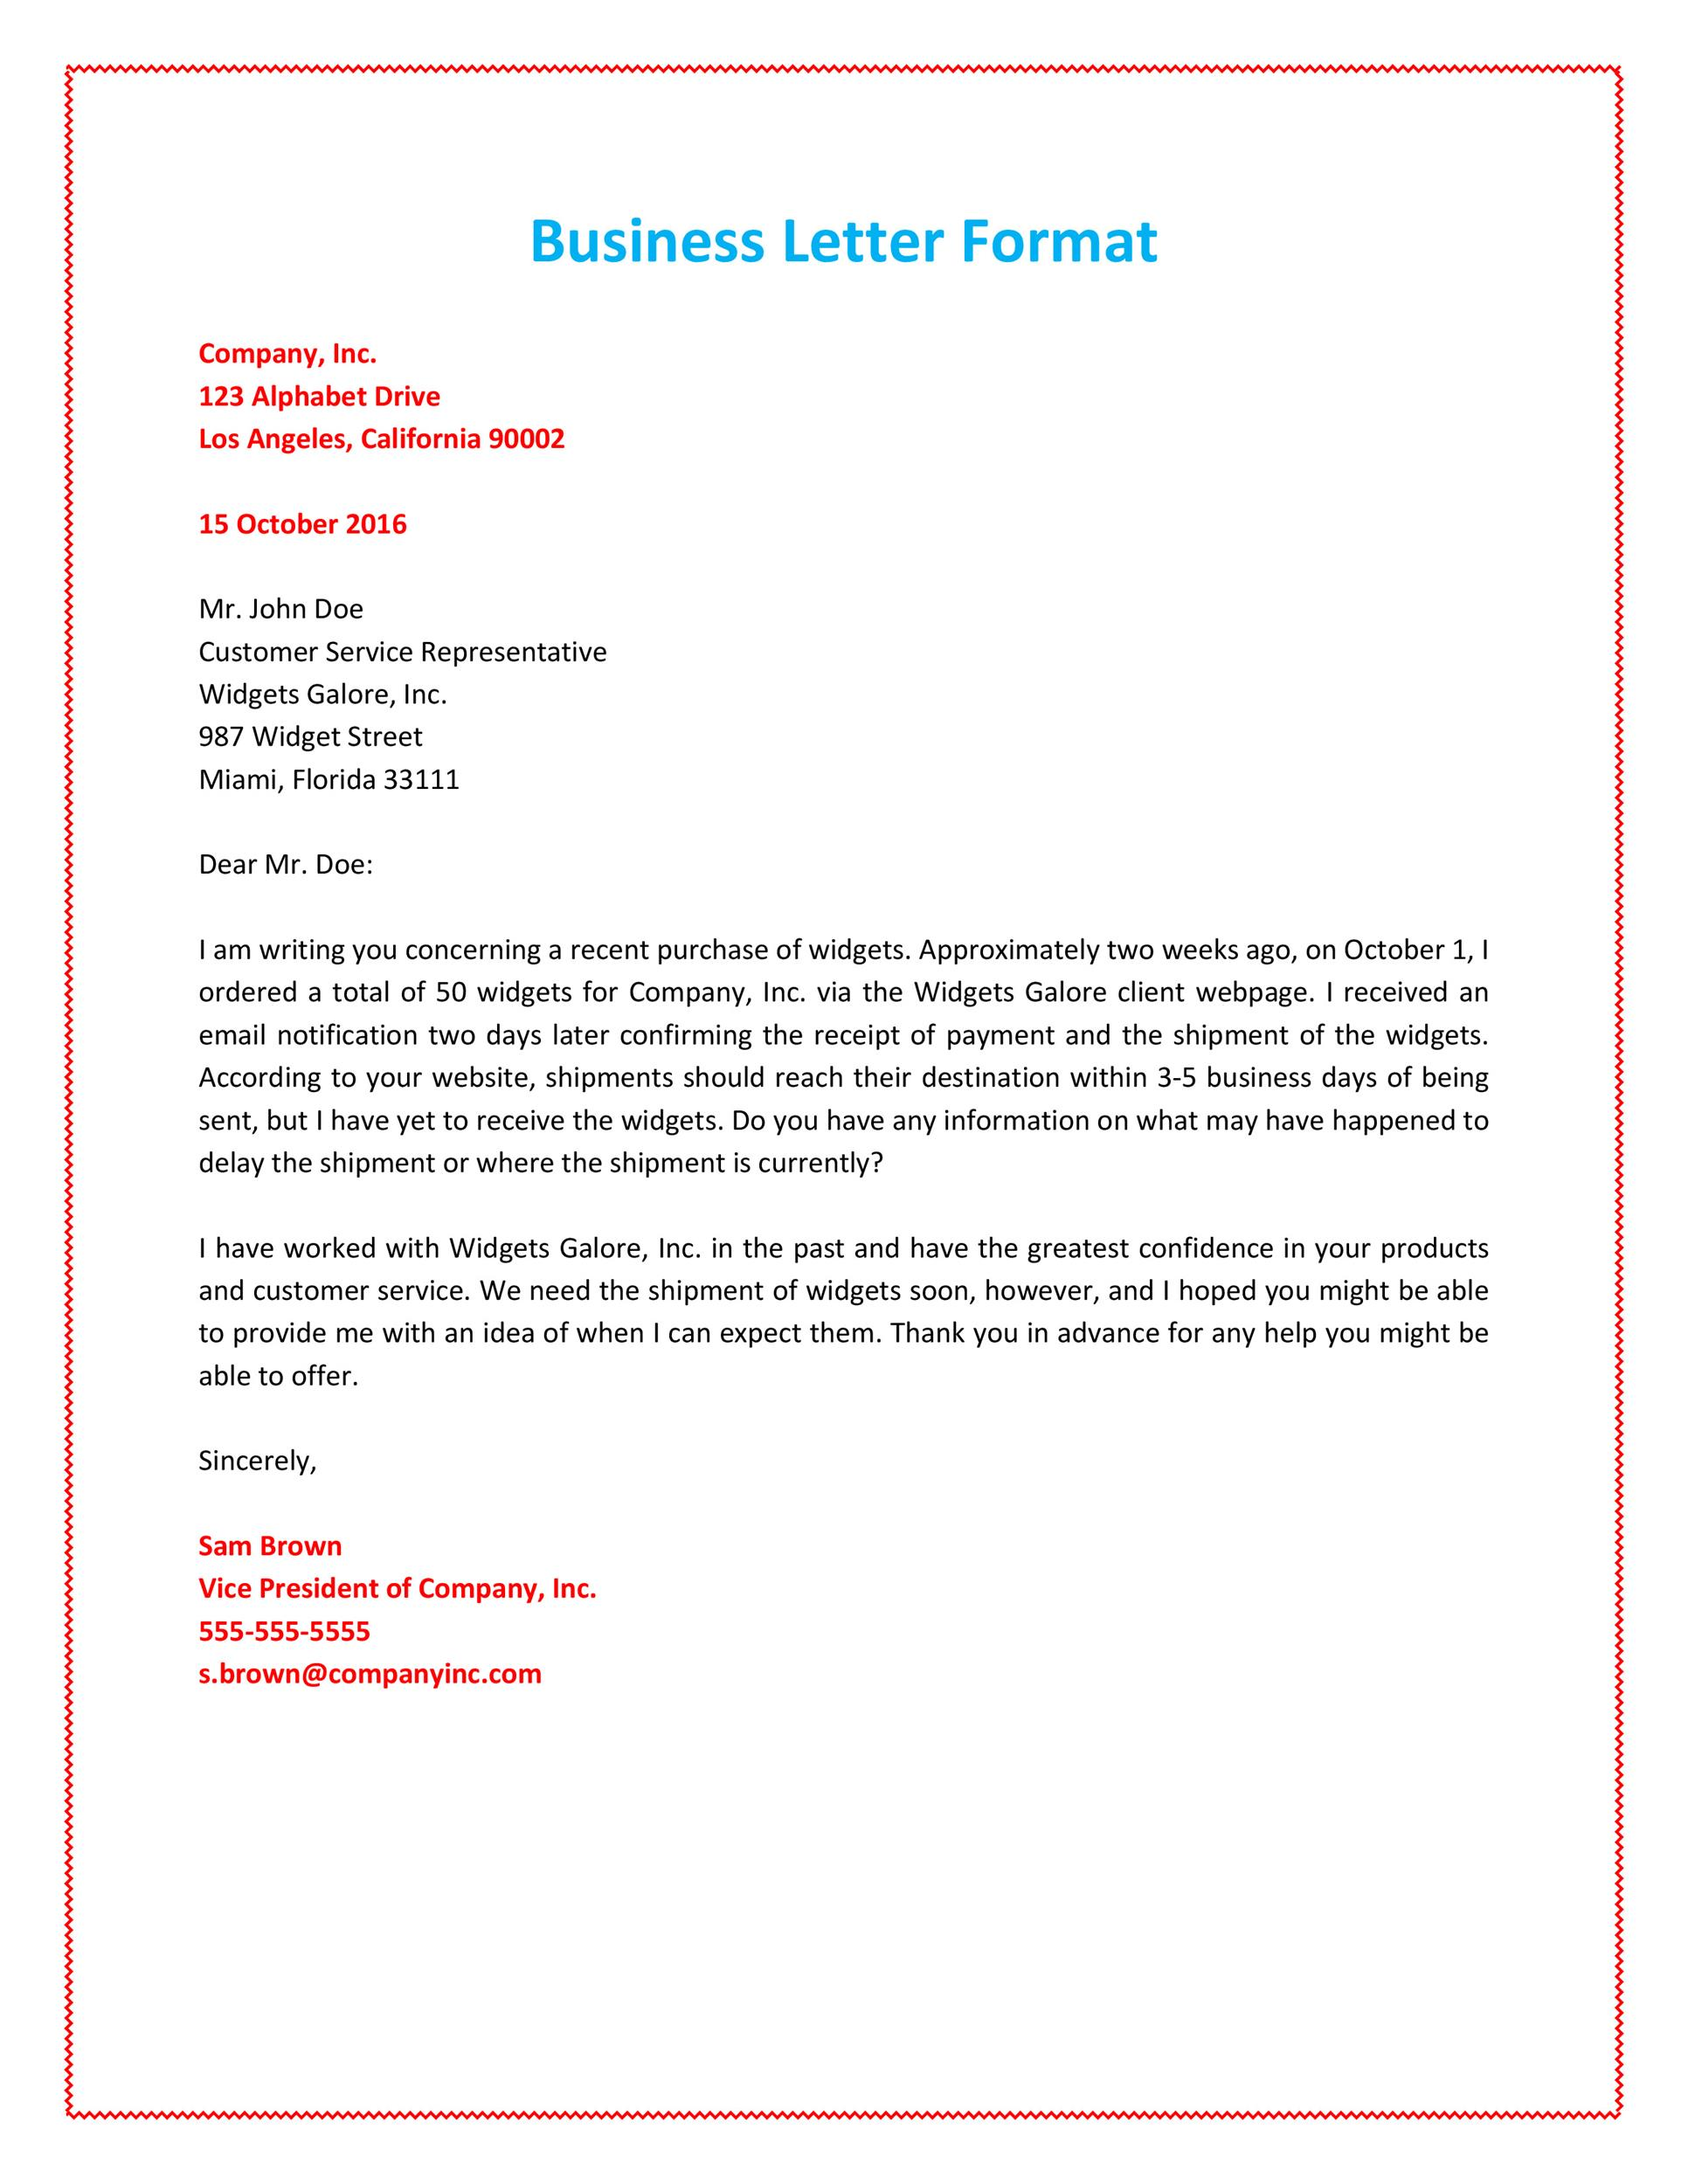 35 formal business letter format templates examples template lab business letter format example friedricerecipe